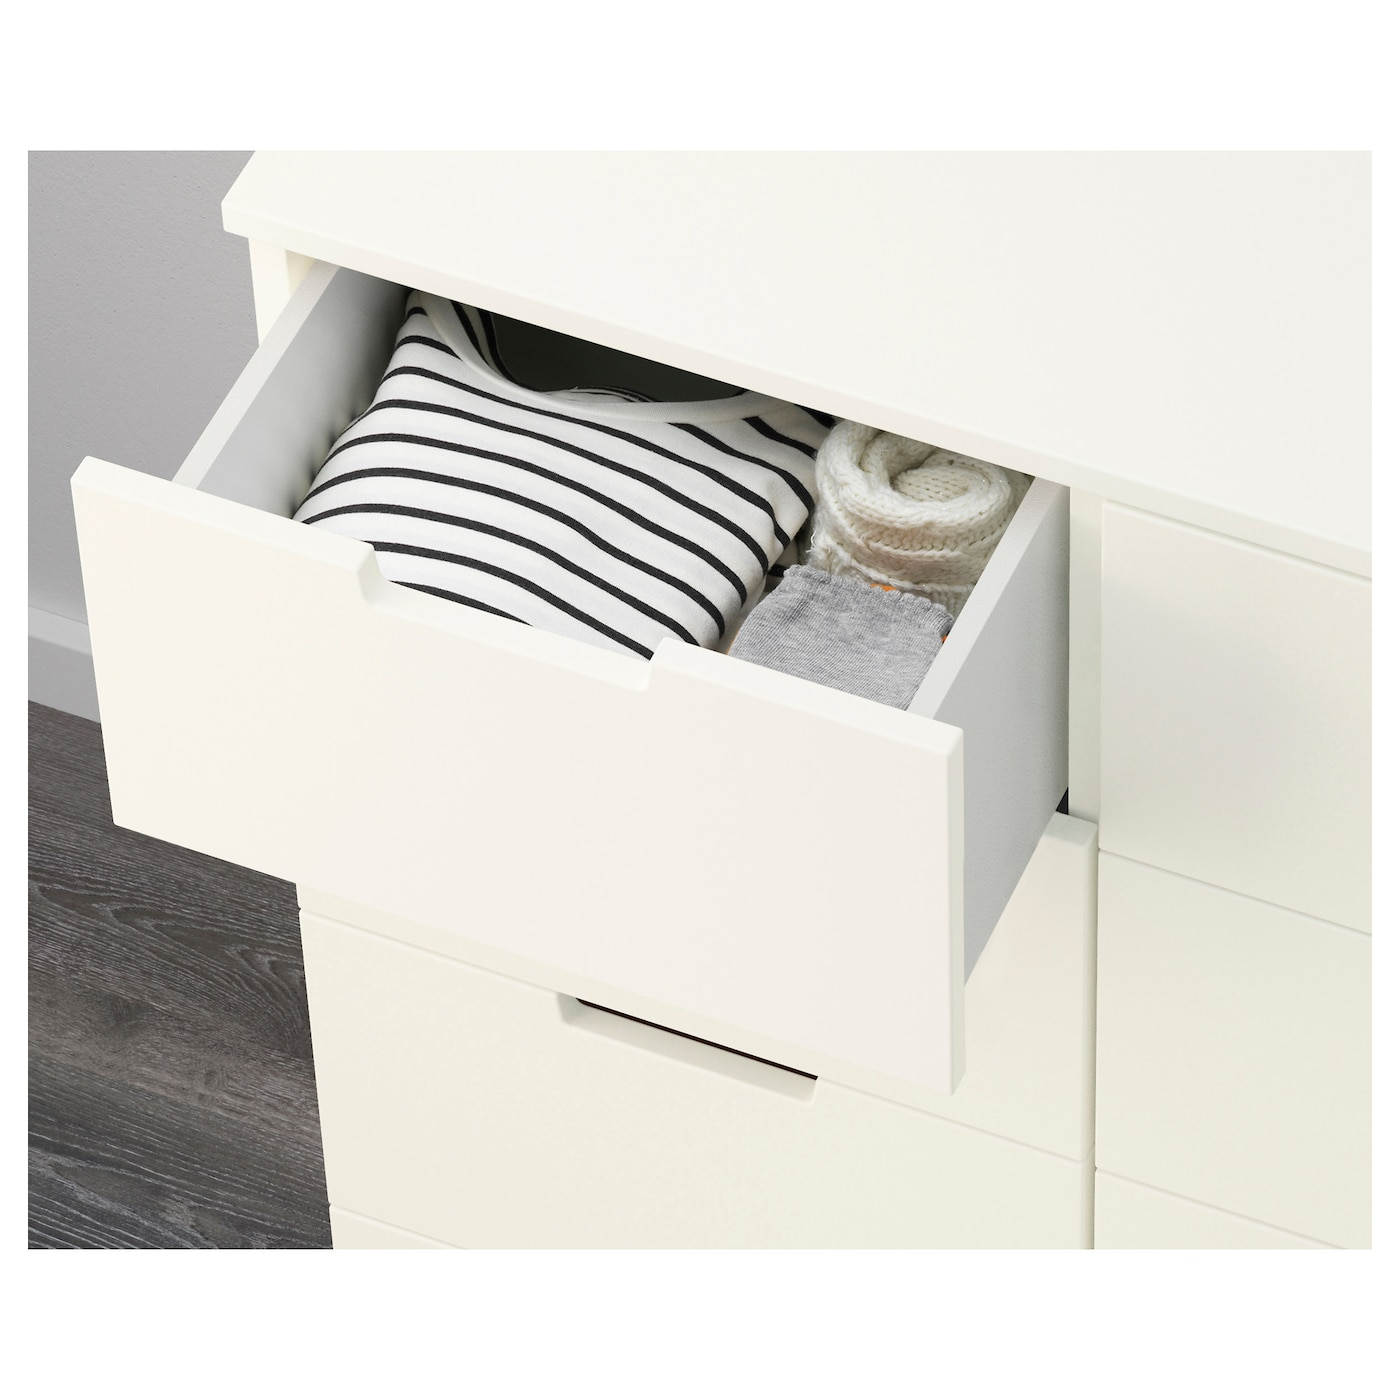 #786D53 NORDLI Chest Of 8 Drawers White 120x97 Cm IKEA with 2000x2000 px of Most Effective Ikea 8 Drawer Chest 20002000 wallpaper @ avoidforclosure.info